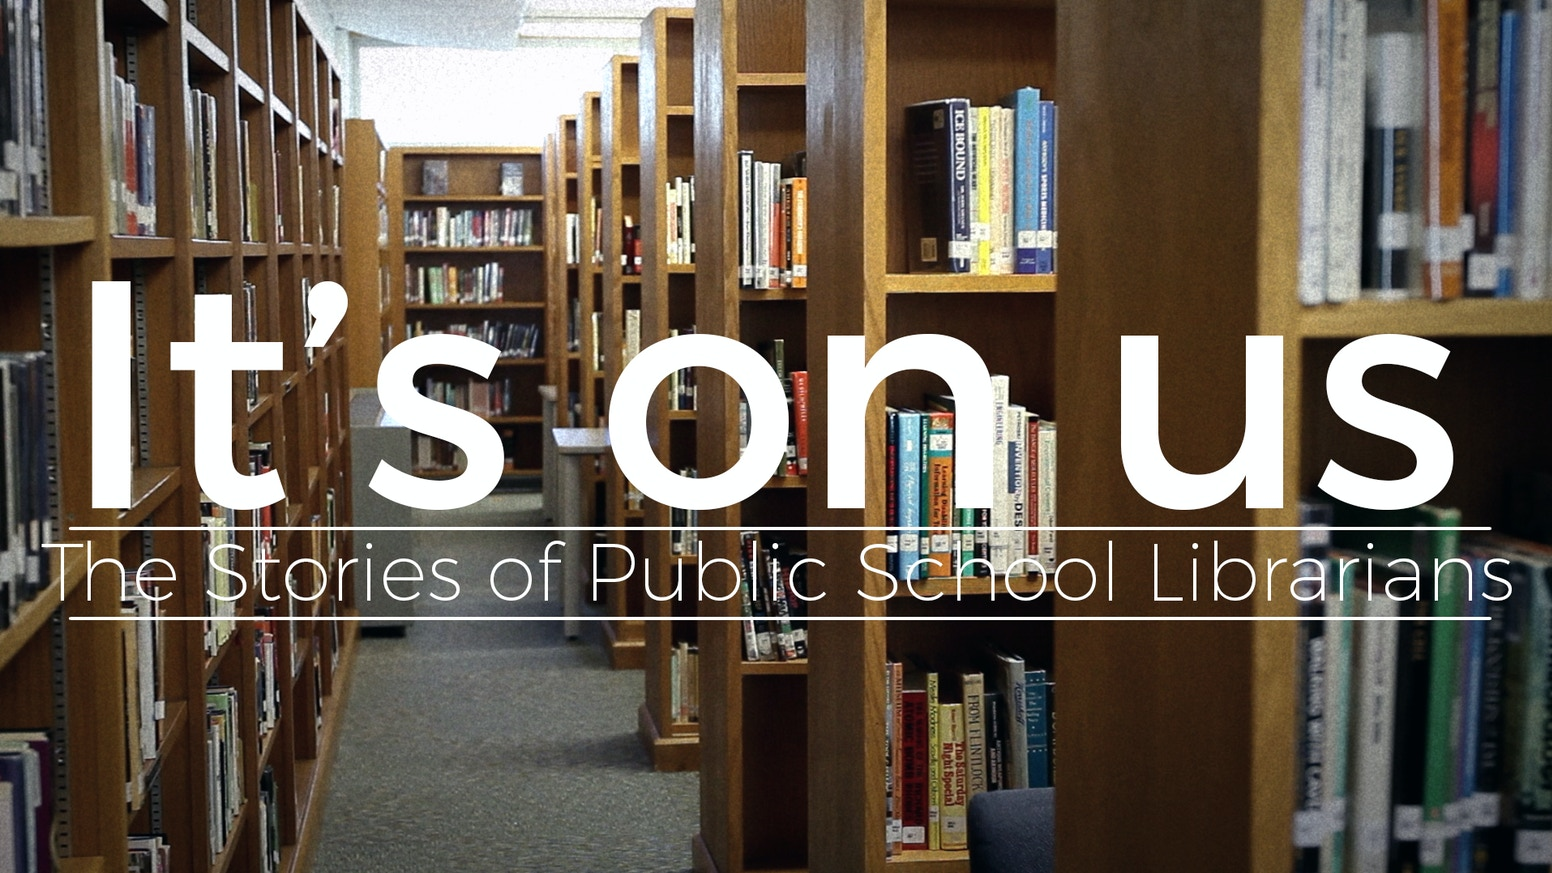 Personal stories of public school librarians and how they are innovating, everyday, evolving their roles.